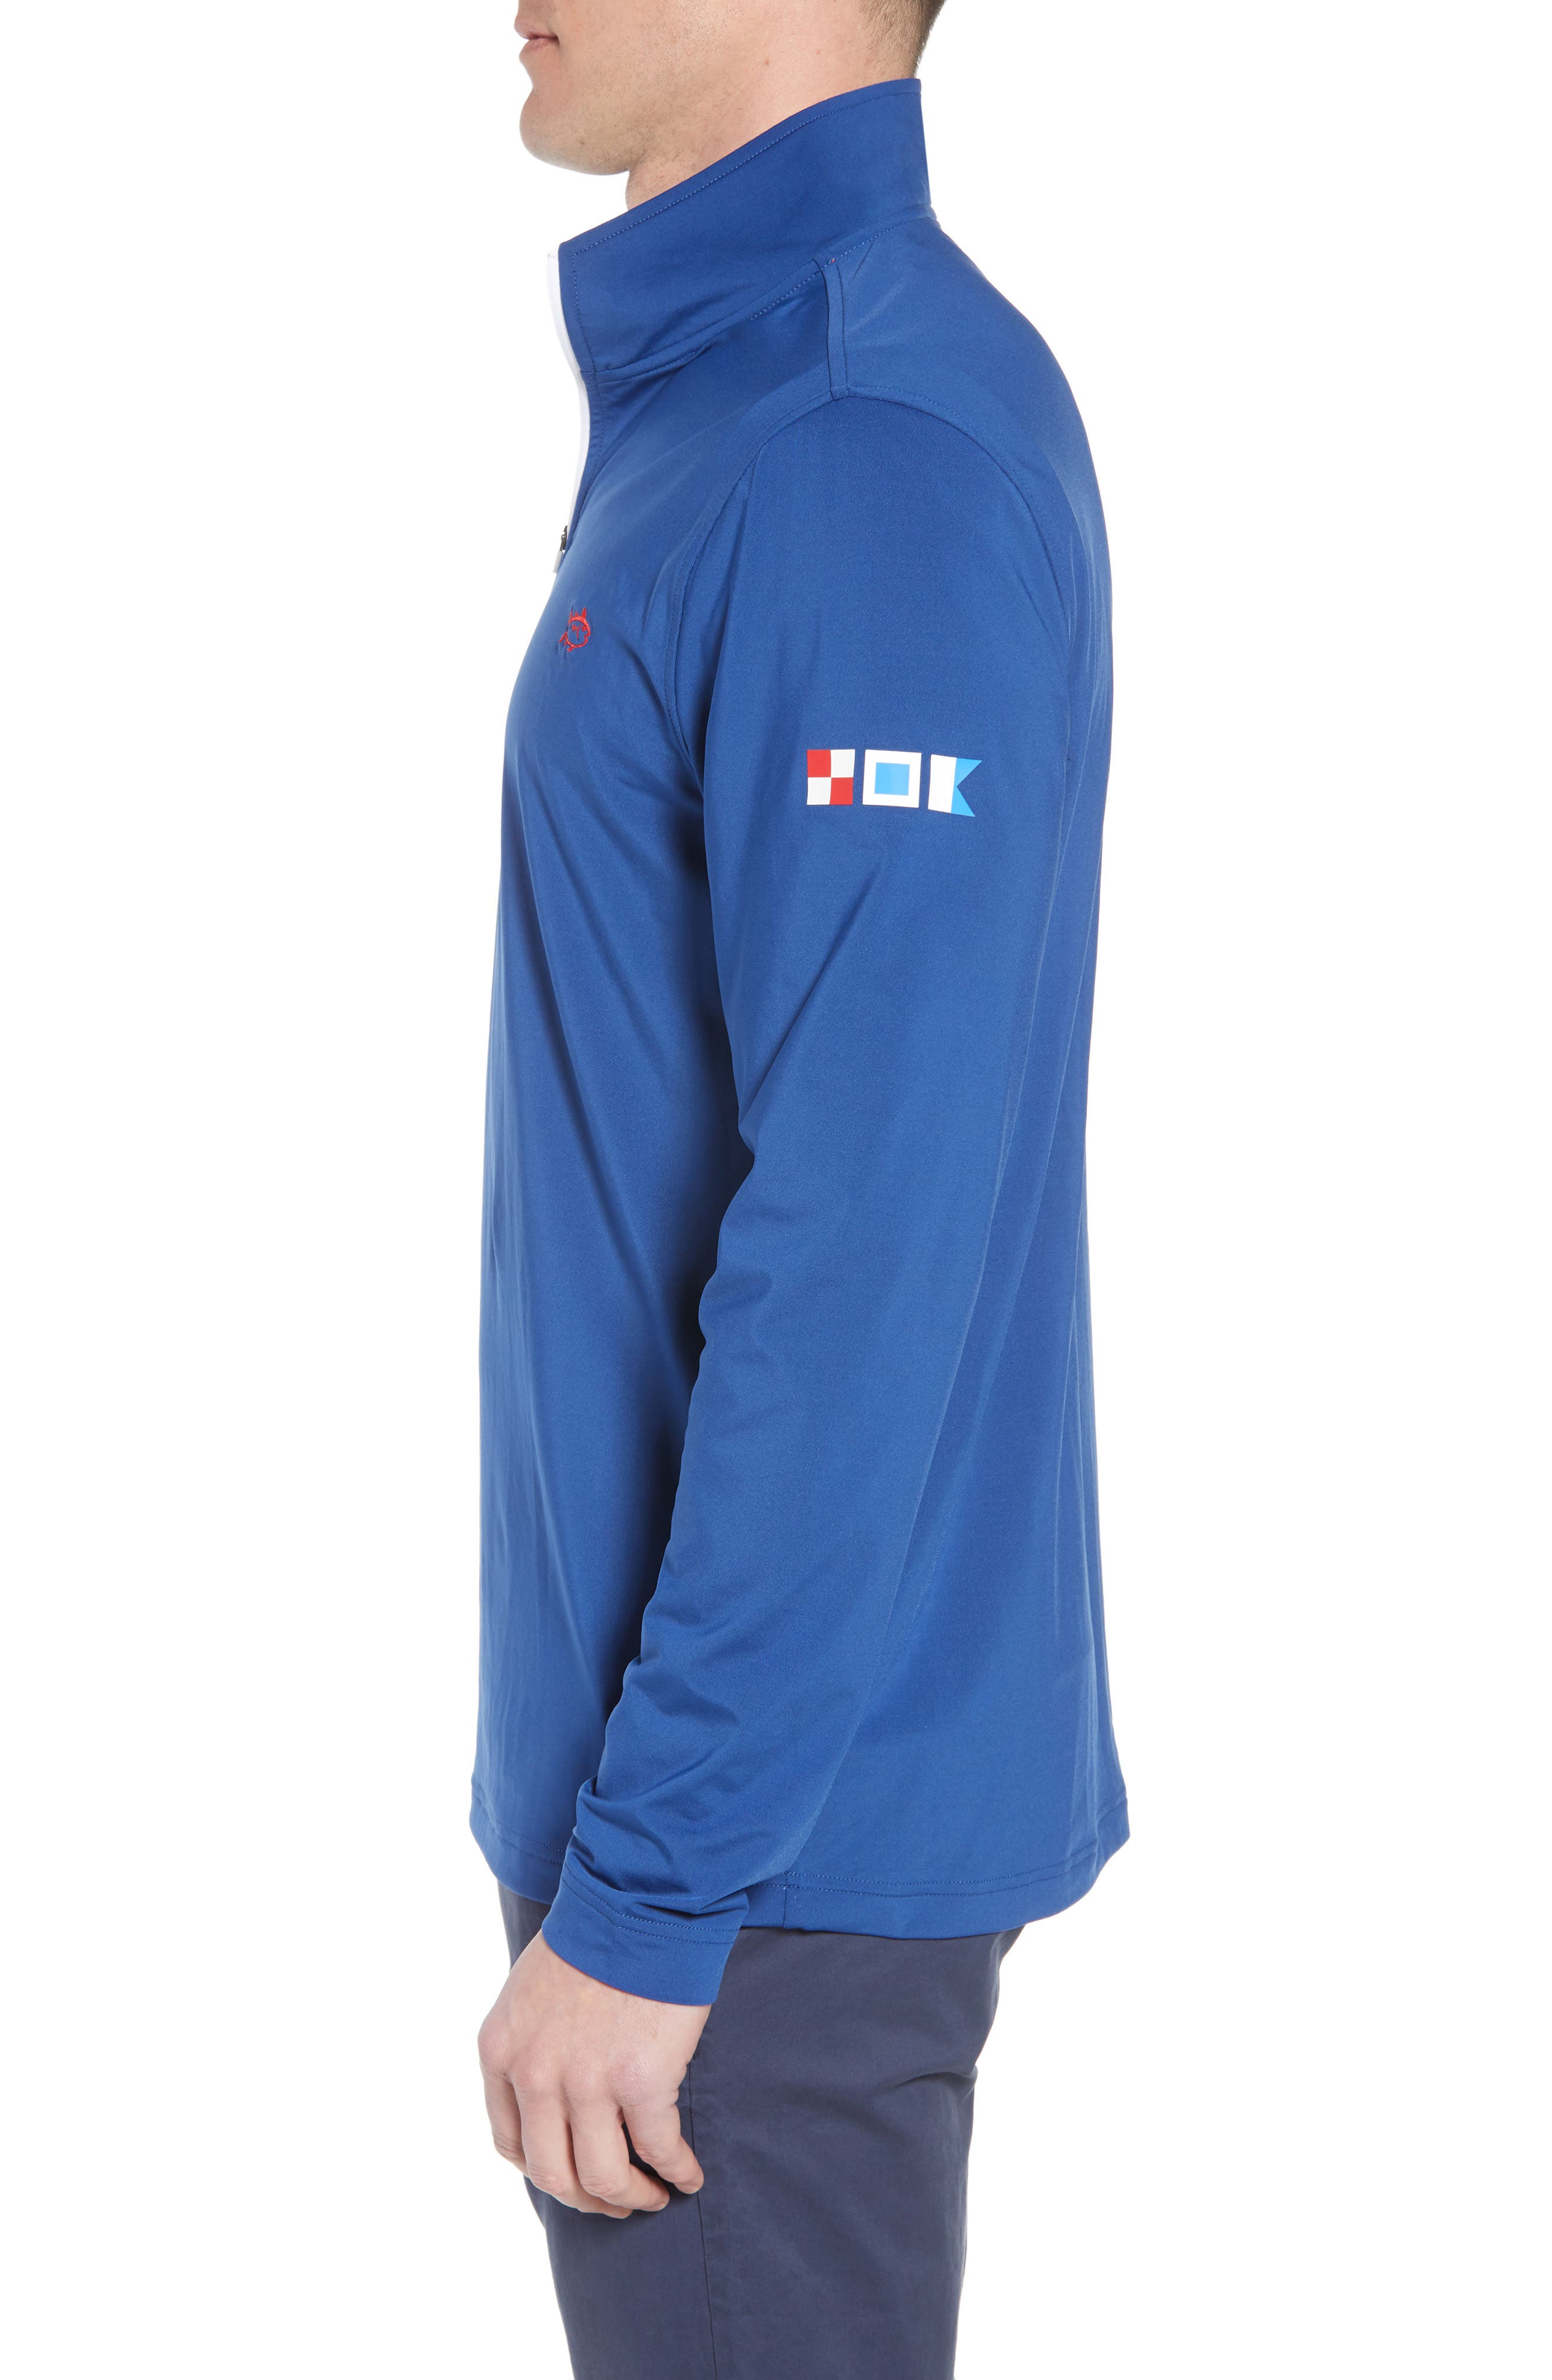 USA Performance Quarter-Zip Pullover,                             Alternate thumbnail 3, color,                             400